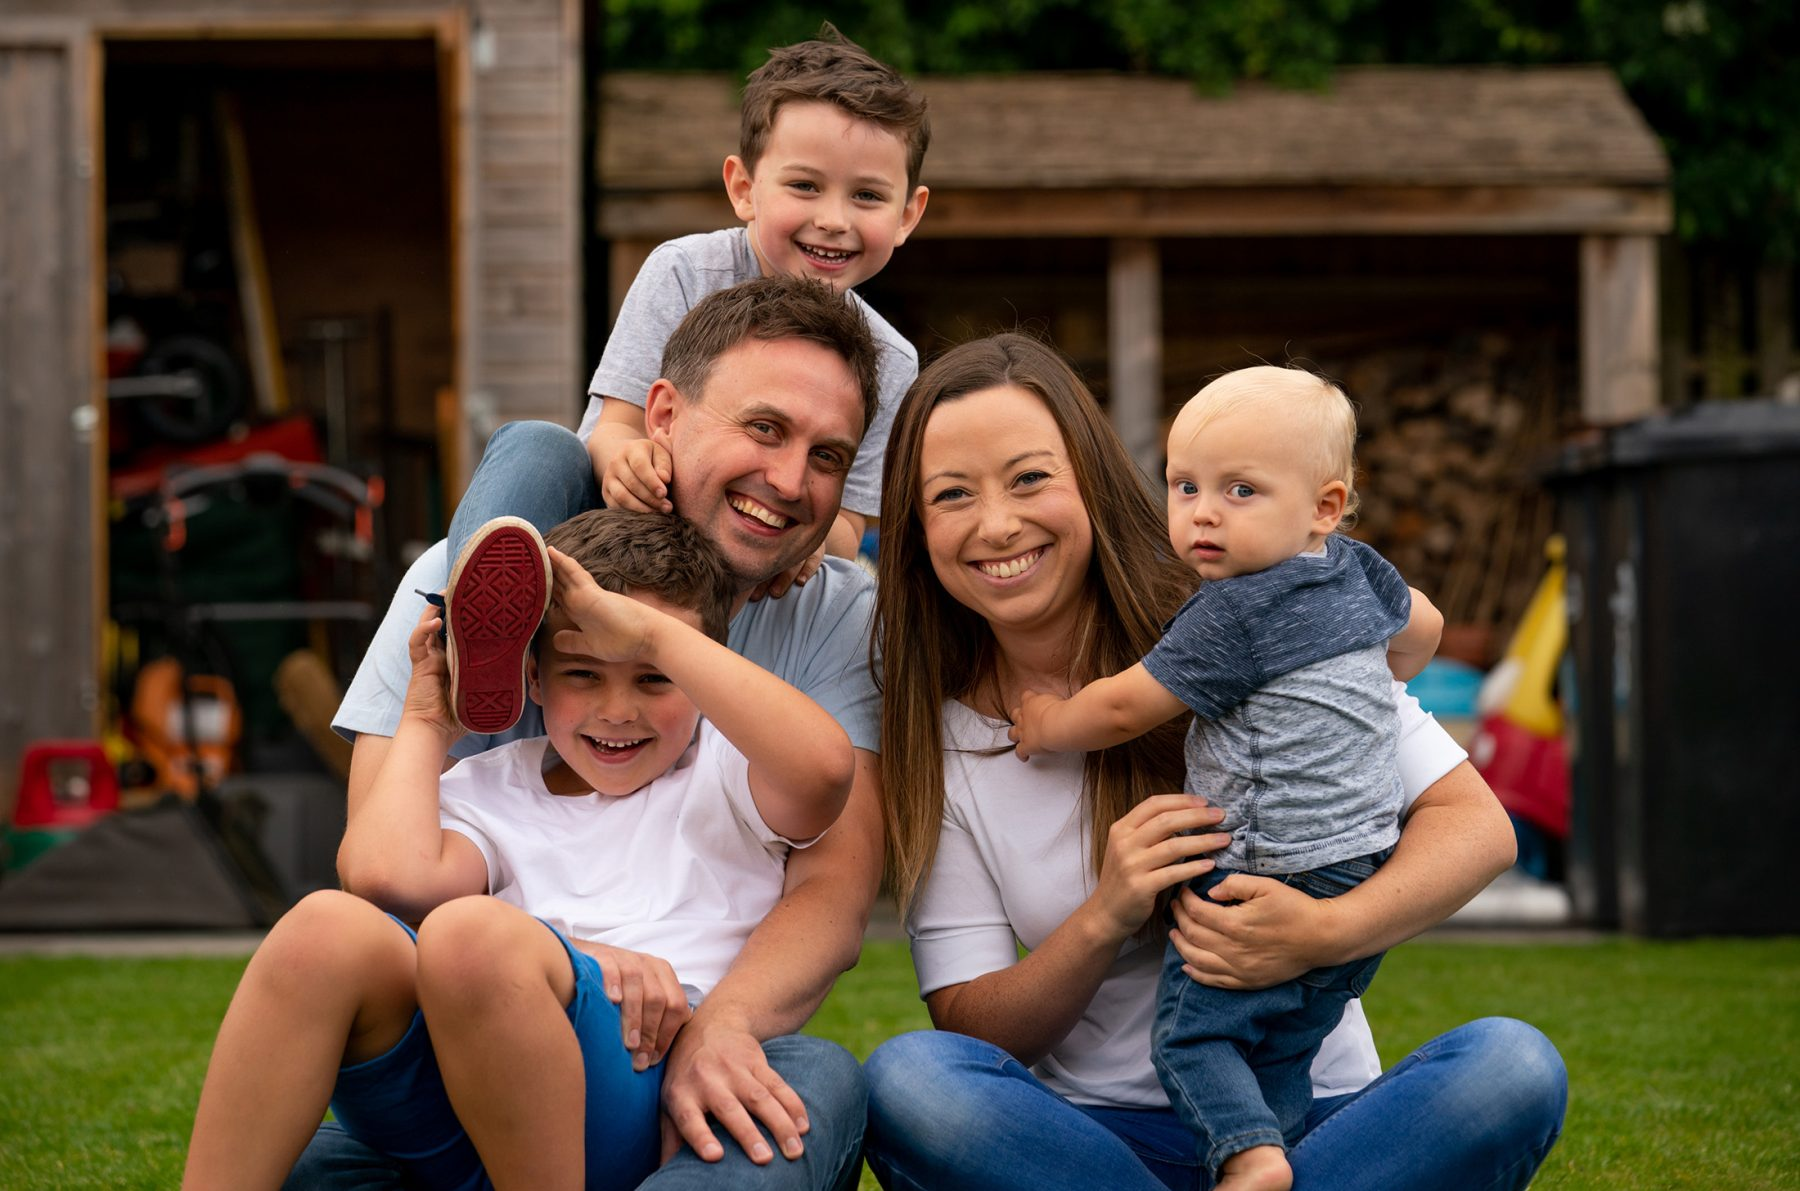 A family from Alsager in Cheshire have their photograph taken in their back garden